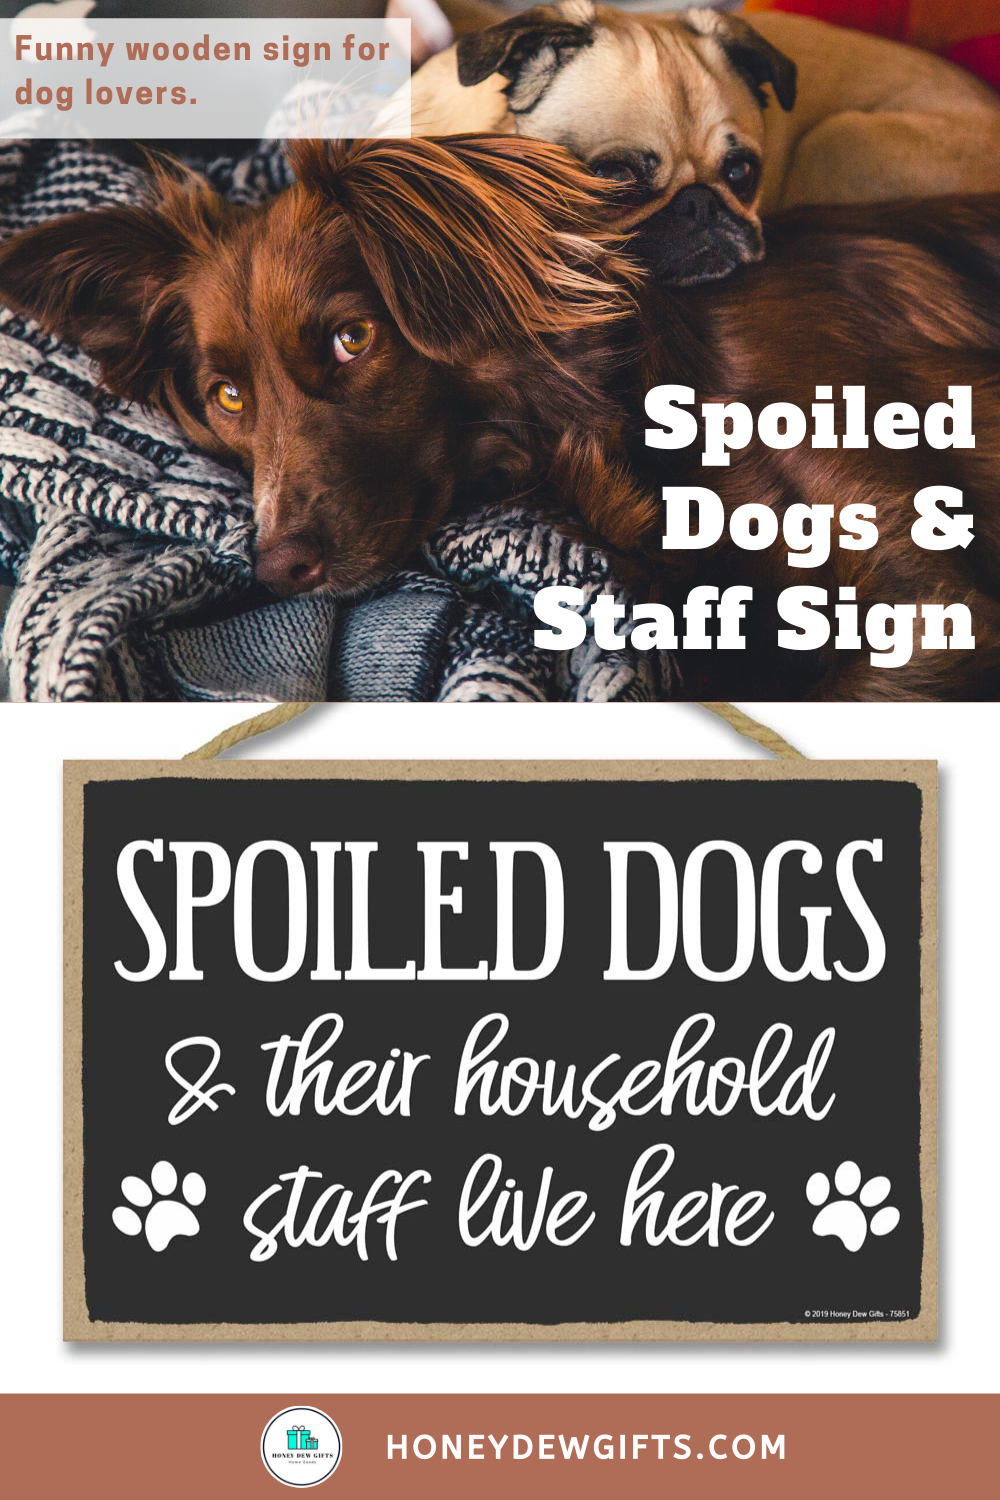 Spoiled Dogs And Staff Sign In 2020 Funny Wooden Signs Spoiled Dogs Funny Home Decor